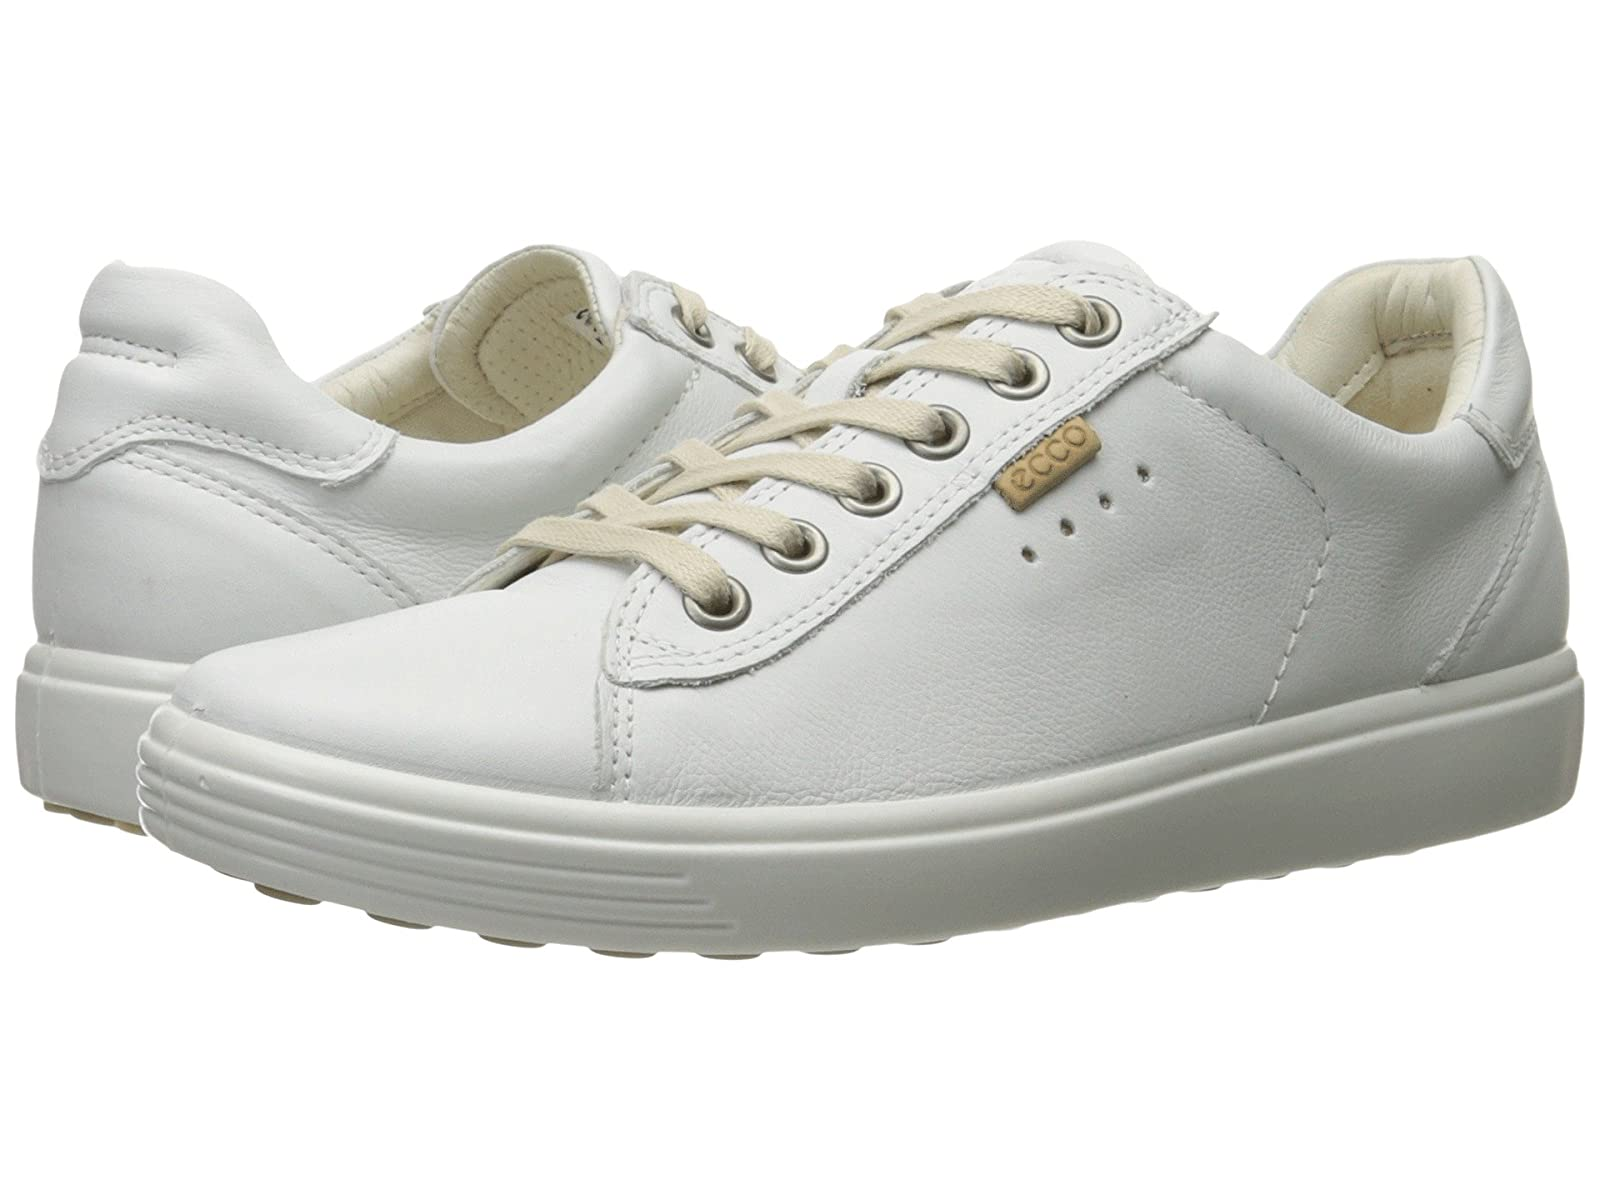 ECCO Soft SneakerAtmospheric grades have affordable shoes